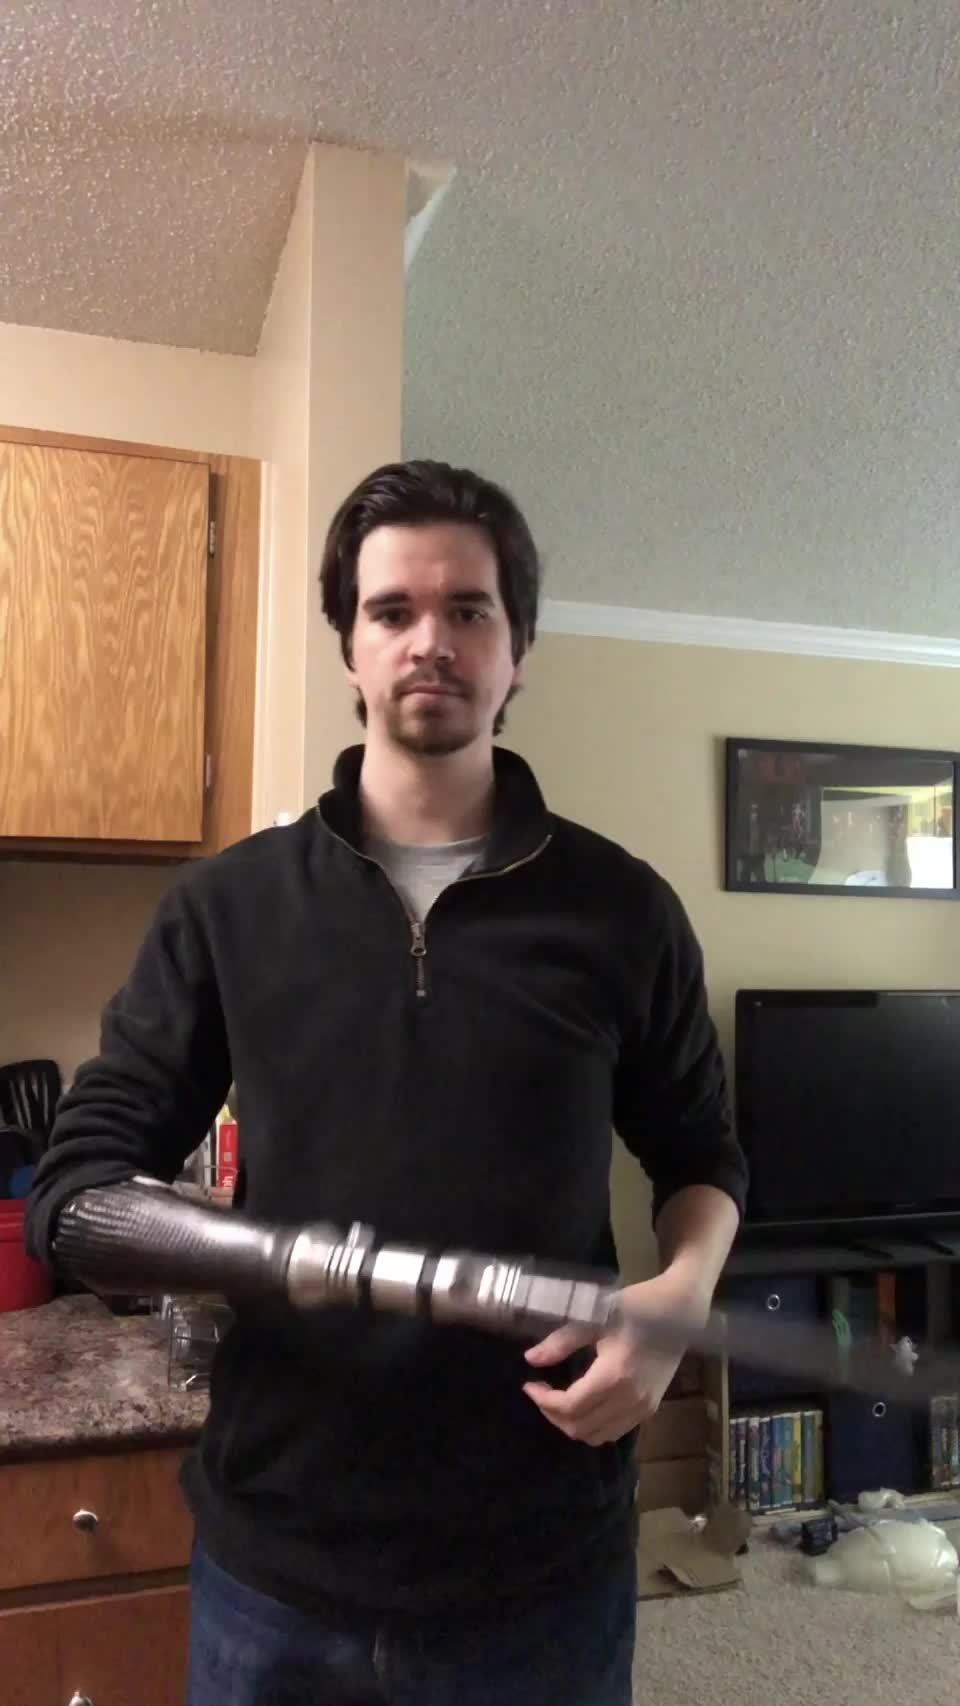 A brief test of my new Darksaber attachment for my bionic arm